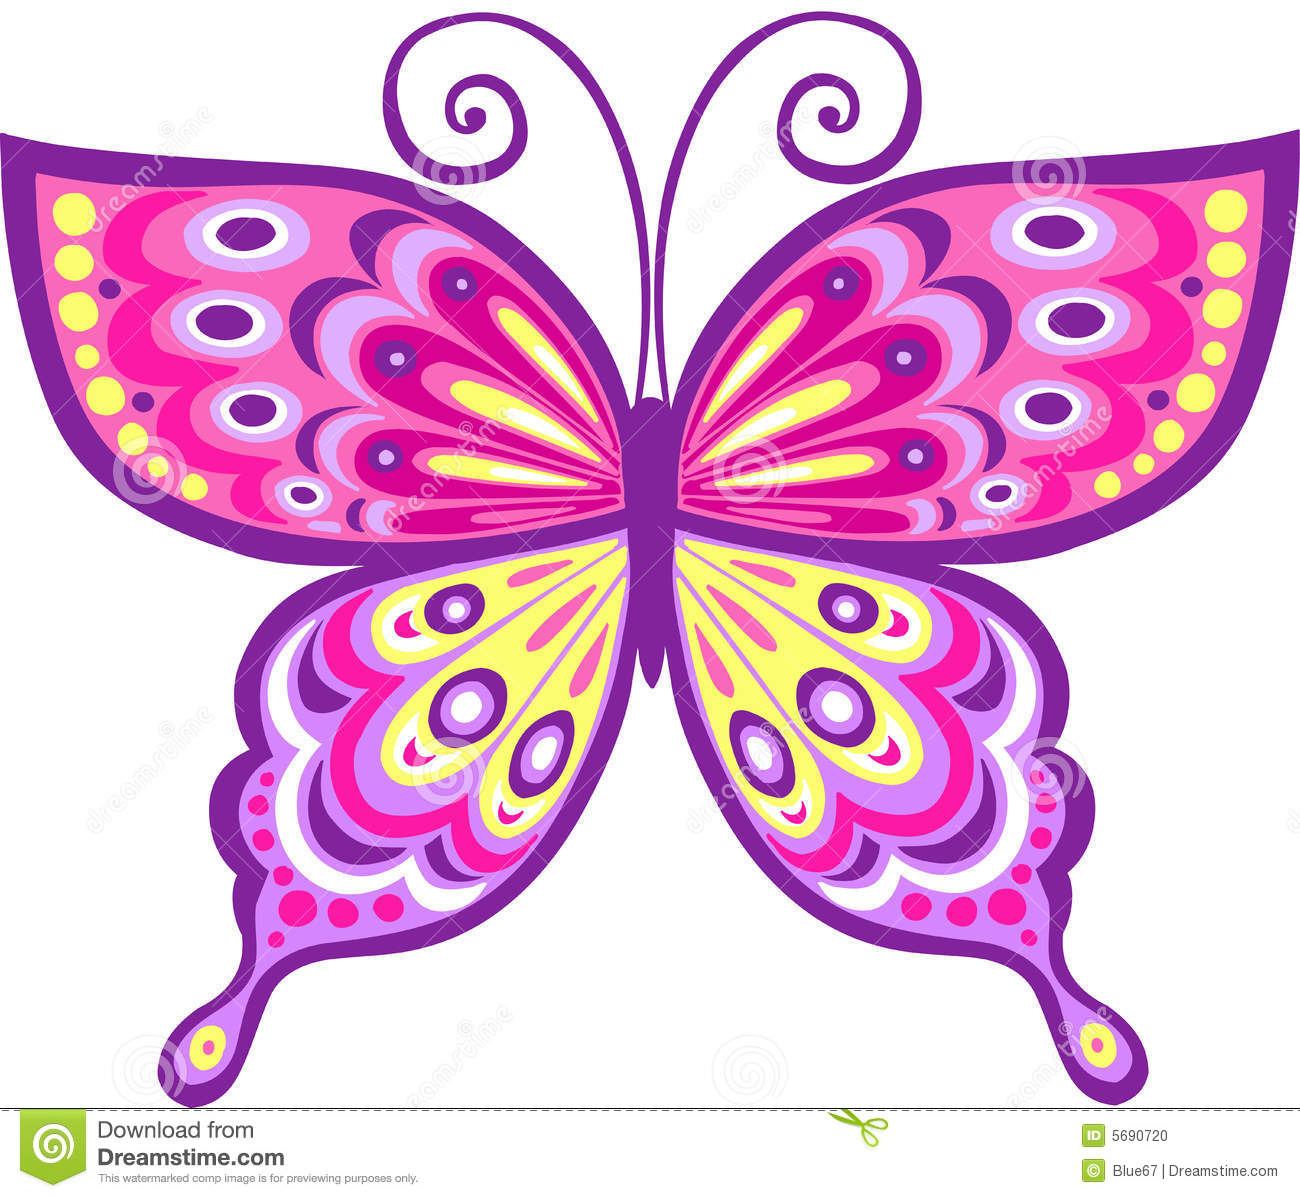 Pink butterfly vector background hd wallpapers pink butterfly vector - Pink Butterfly Vector Illustration Stock Photo